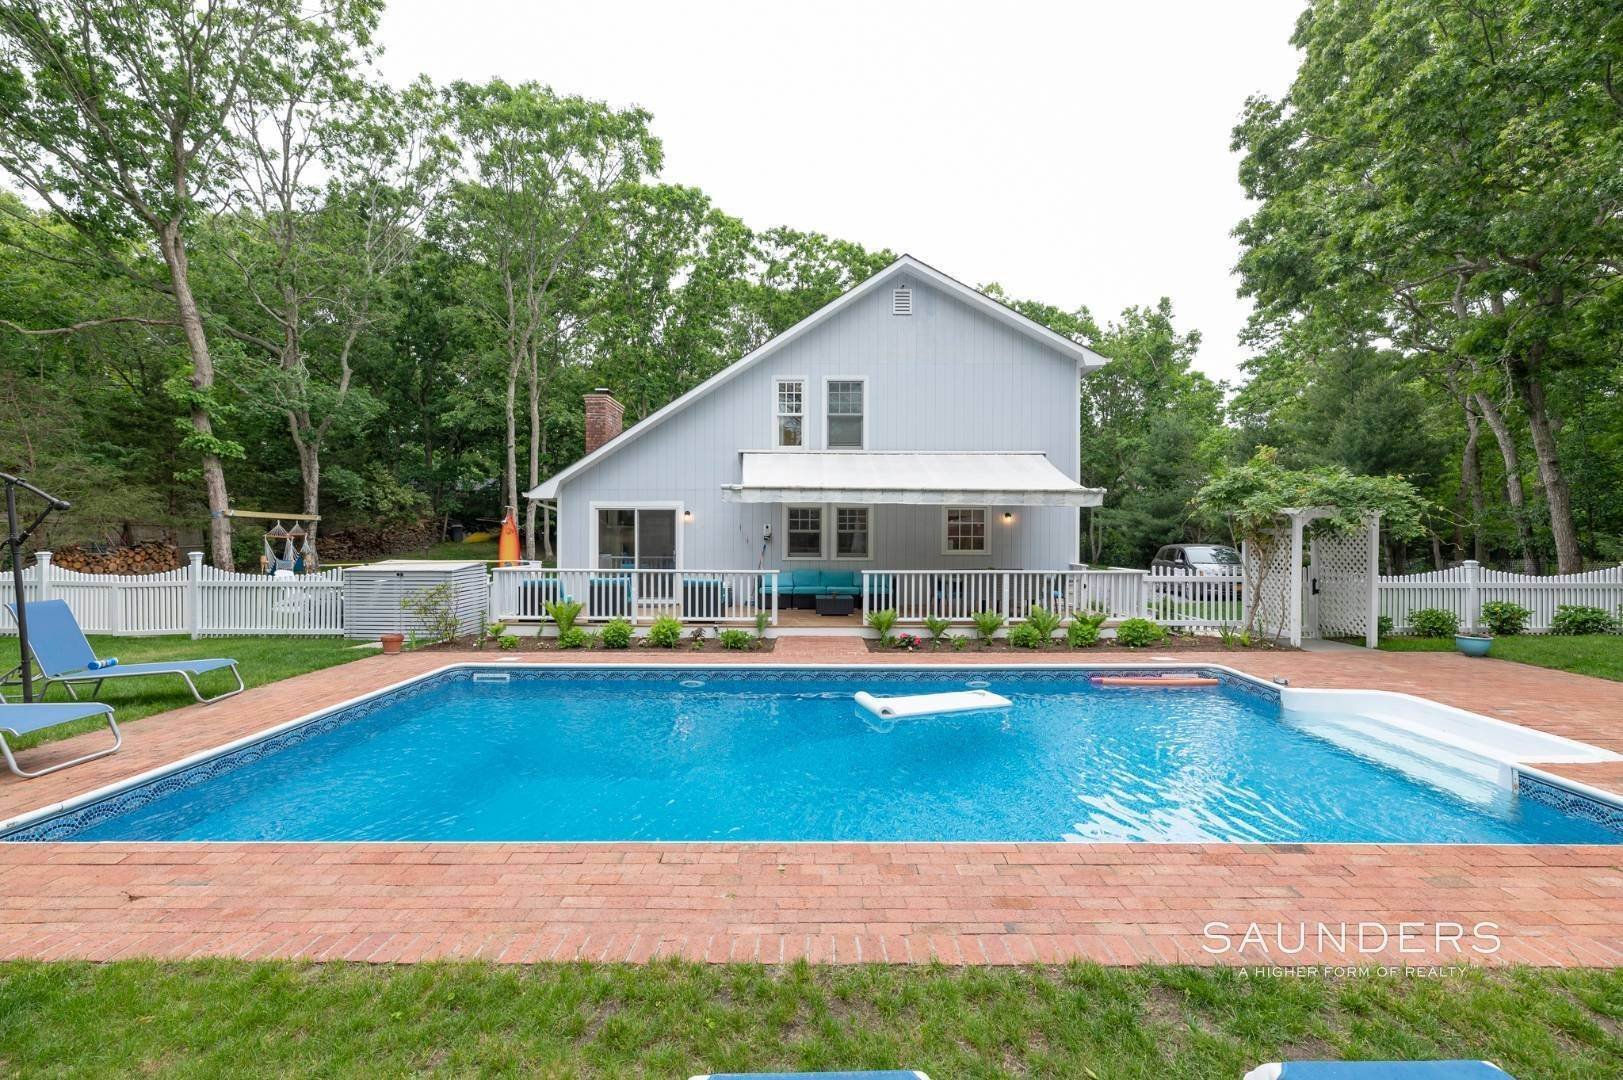 Single Family Homes for Sale at Renovated In Springs With Pool And Outdoor Entertaining 28 Ocean View Avenue, East Hampton, East Hampton Town, NY 11937